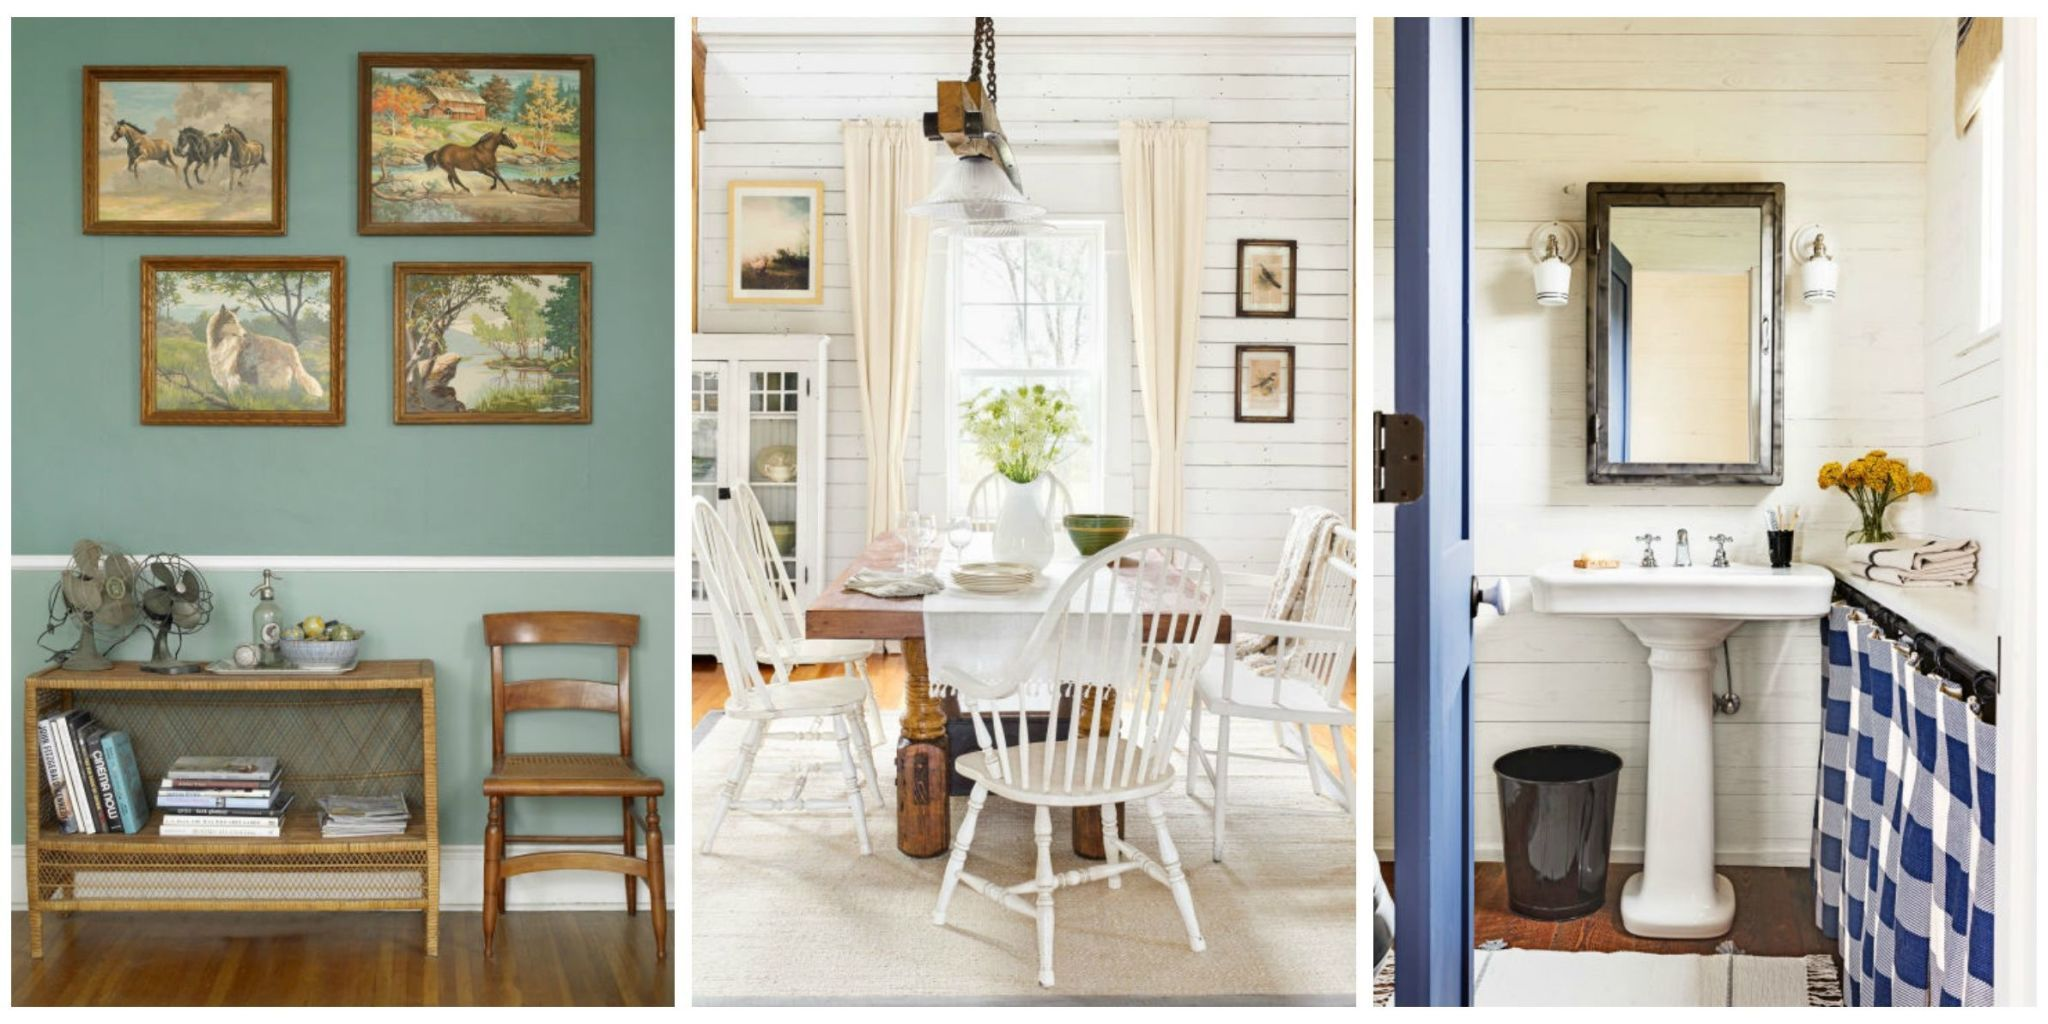 Delicieux Small Decorating Projects Can Freshen Up Your Home And Be Inexpensive. Try  One Or Two Of These Budget Friendly Fixes For An Instant Update!